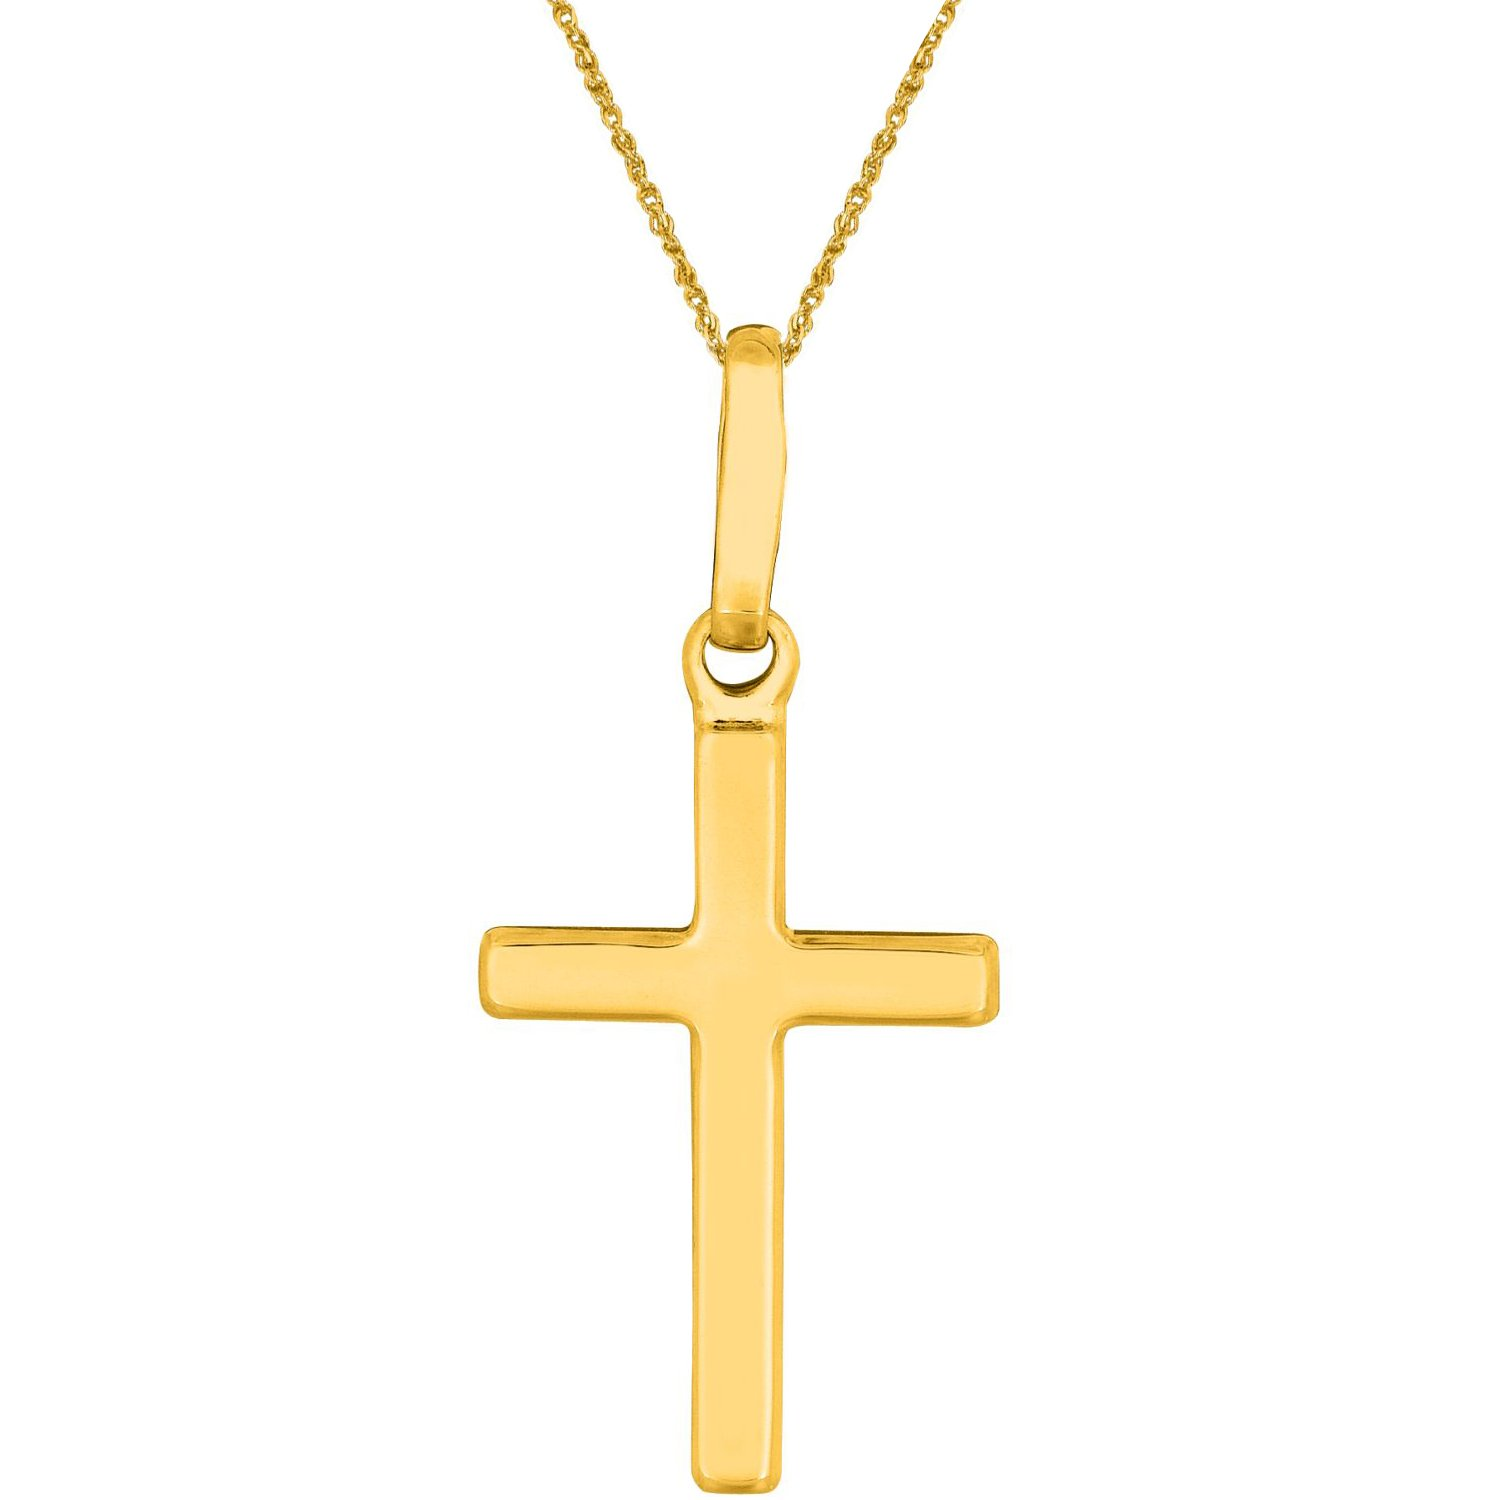 14K Real Yellow Gold Cross Charm Baby Children Necklace 16 Inches